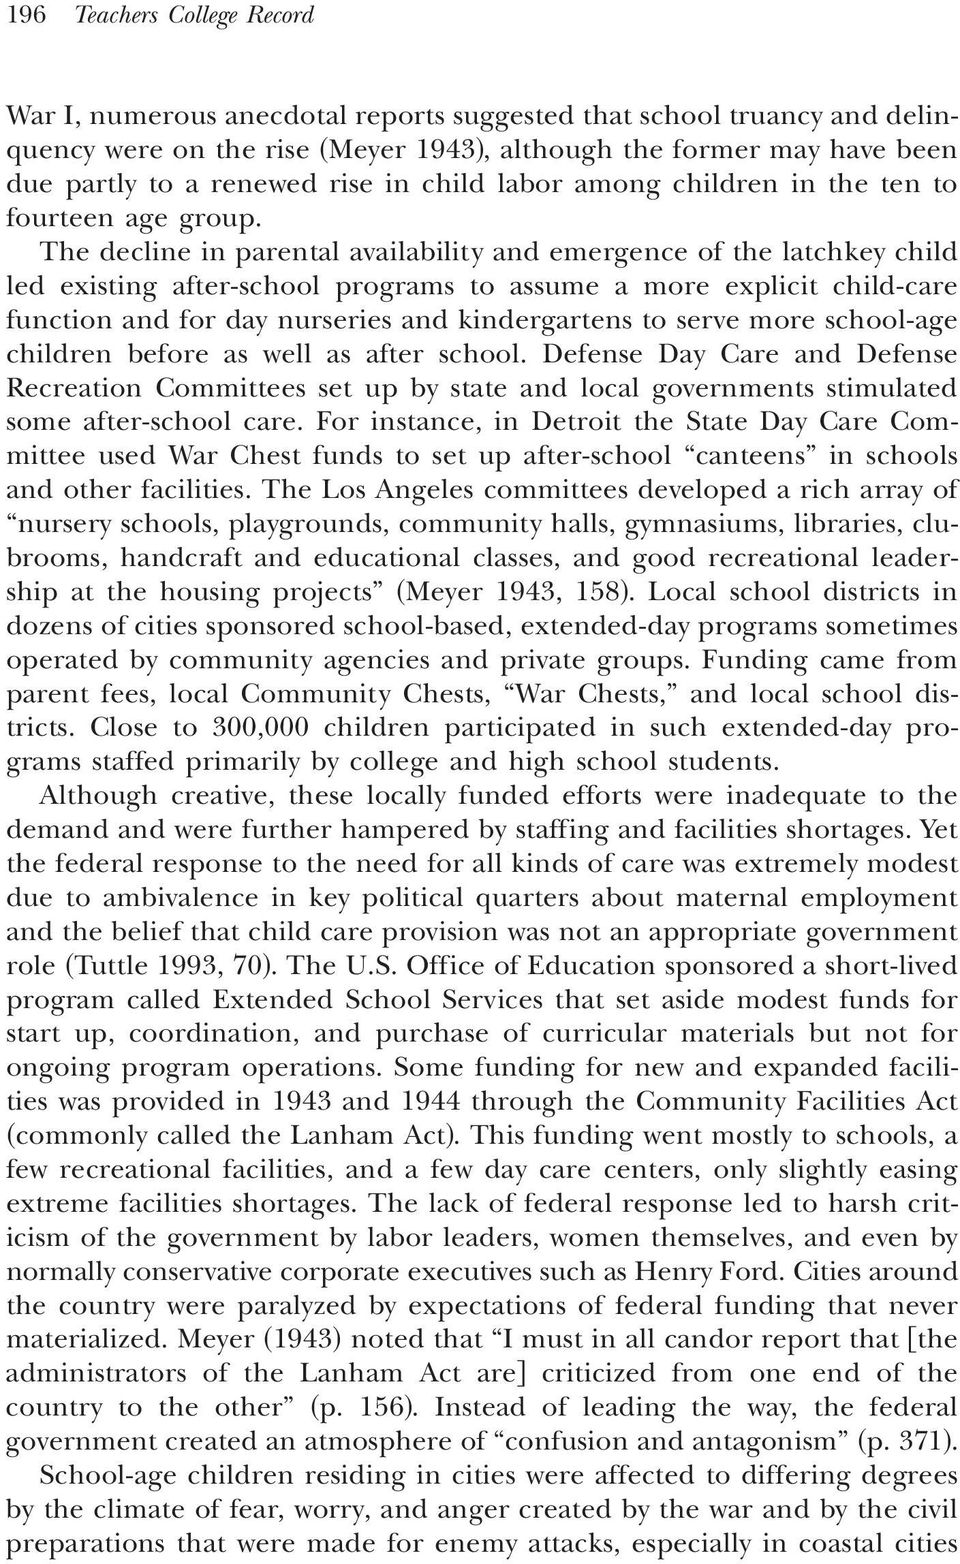 The decline in parental availability and emergence of the latchkey child led existing after-school programs to assume a more explicit child-care function and for day nurseries and kindergartens to